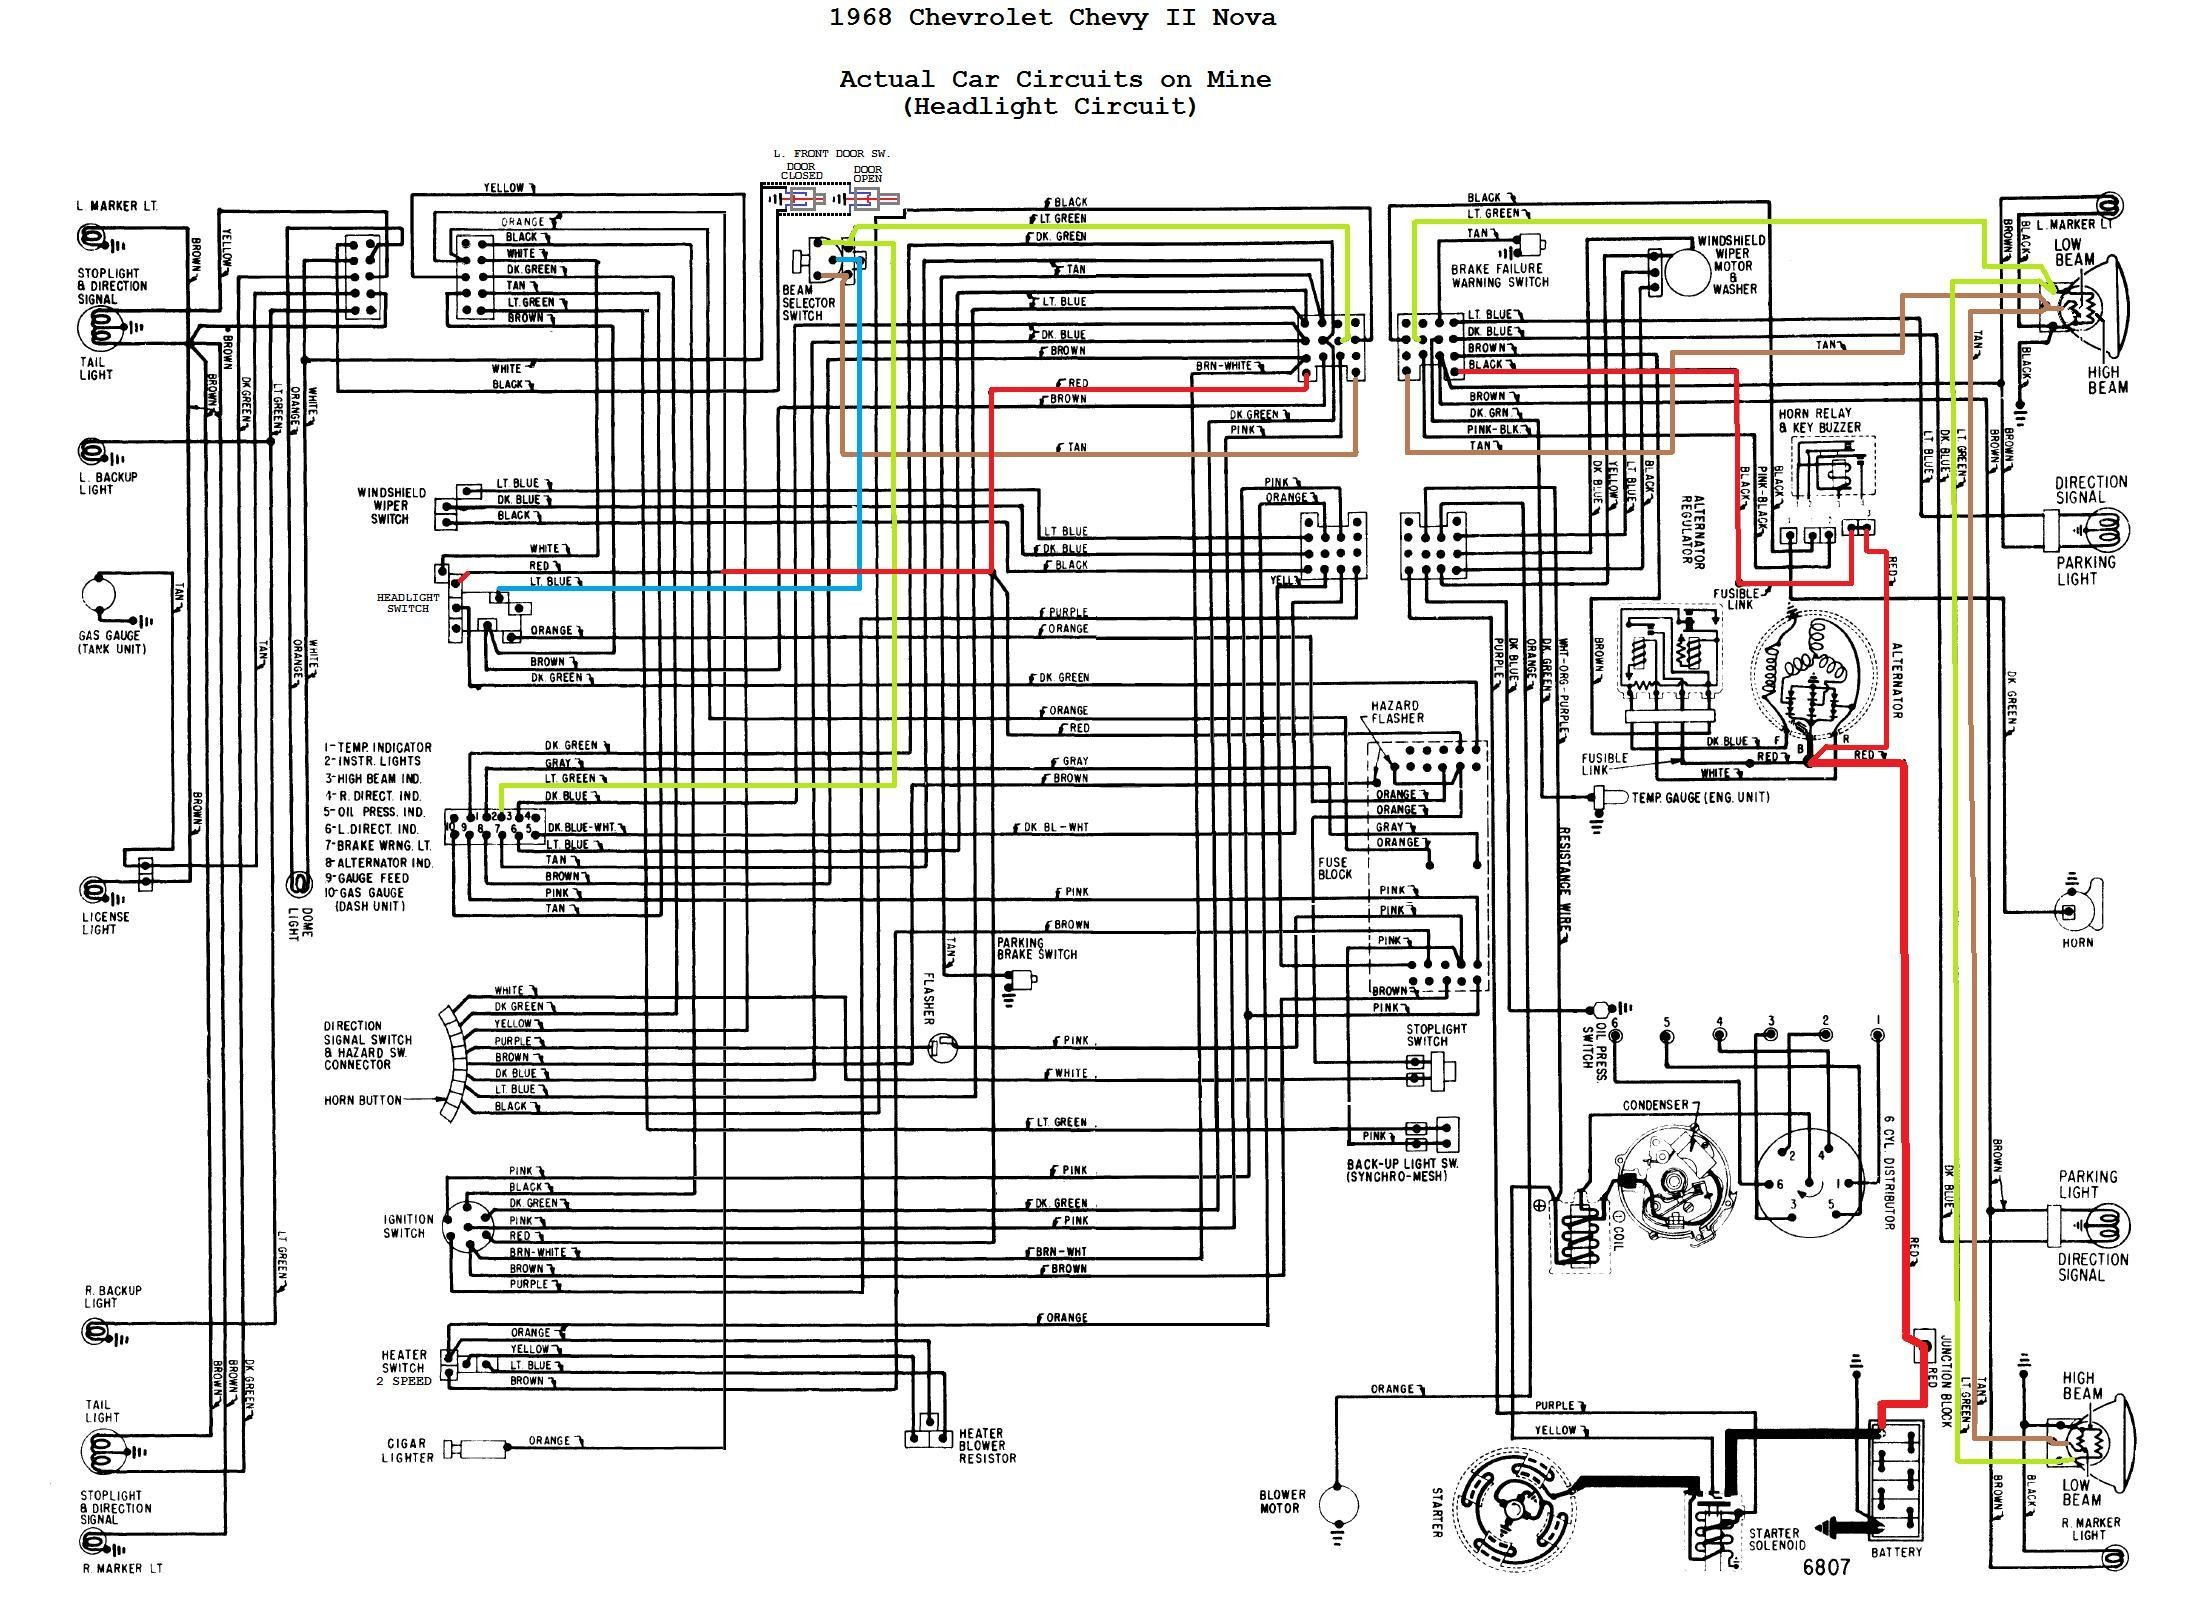 1971 Chevelle Wiring Diagram 1971 Chevy 4×4 Wiring Diagram Wiring Diagram Datasource Of 1971 Chevelle Wiring Diagram 66 Chevelle Wiring Diagram Wiring Diagram toolbox